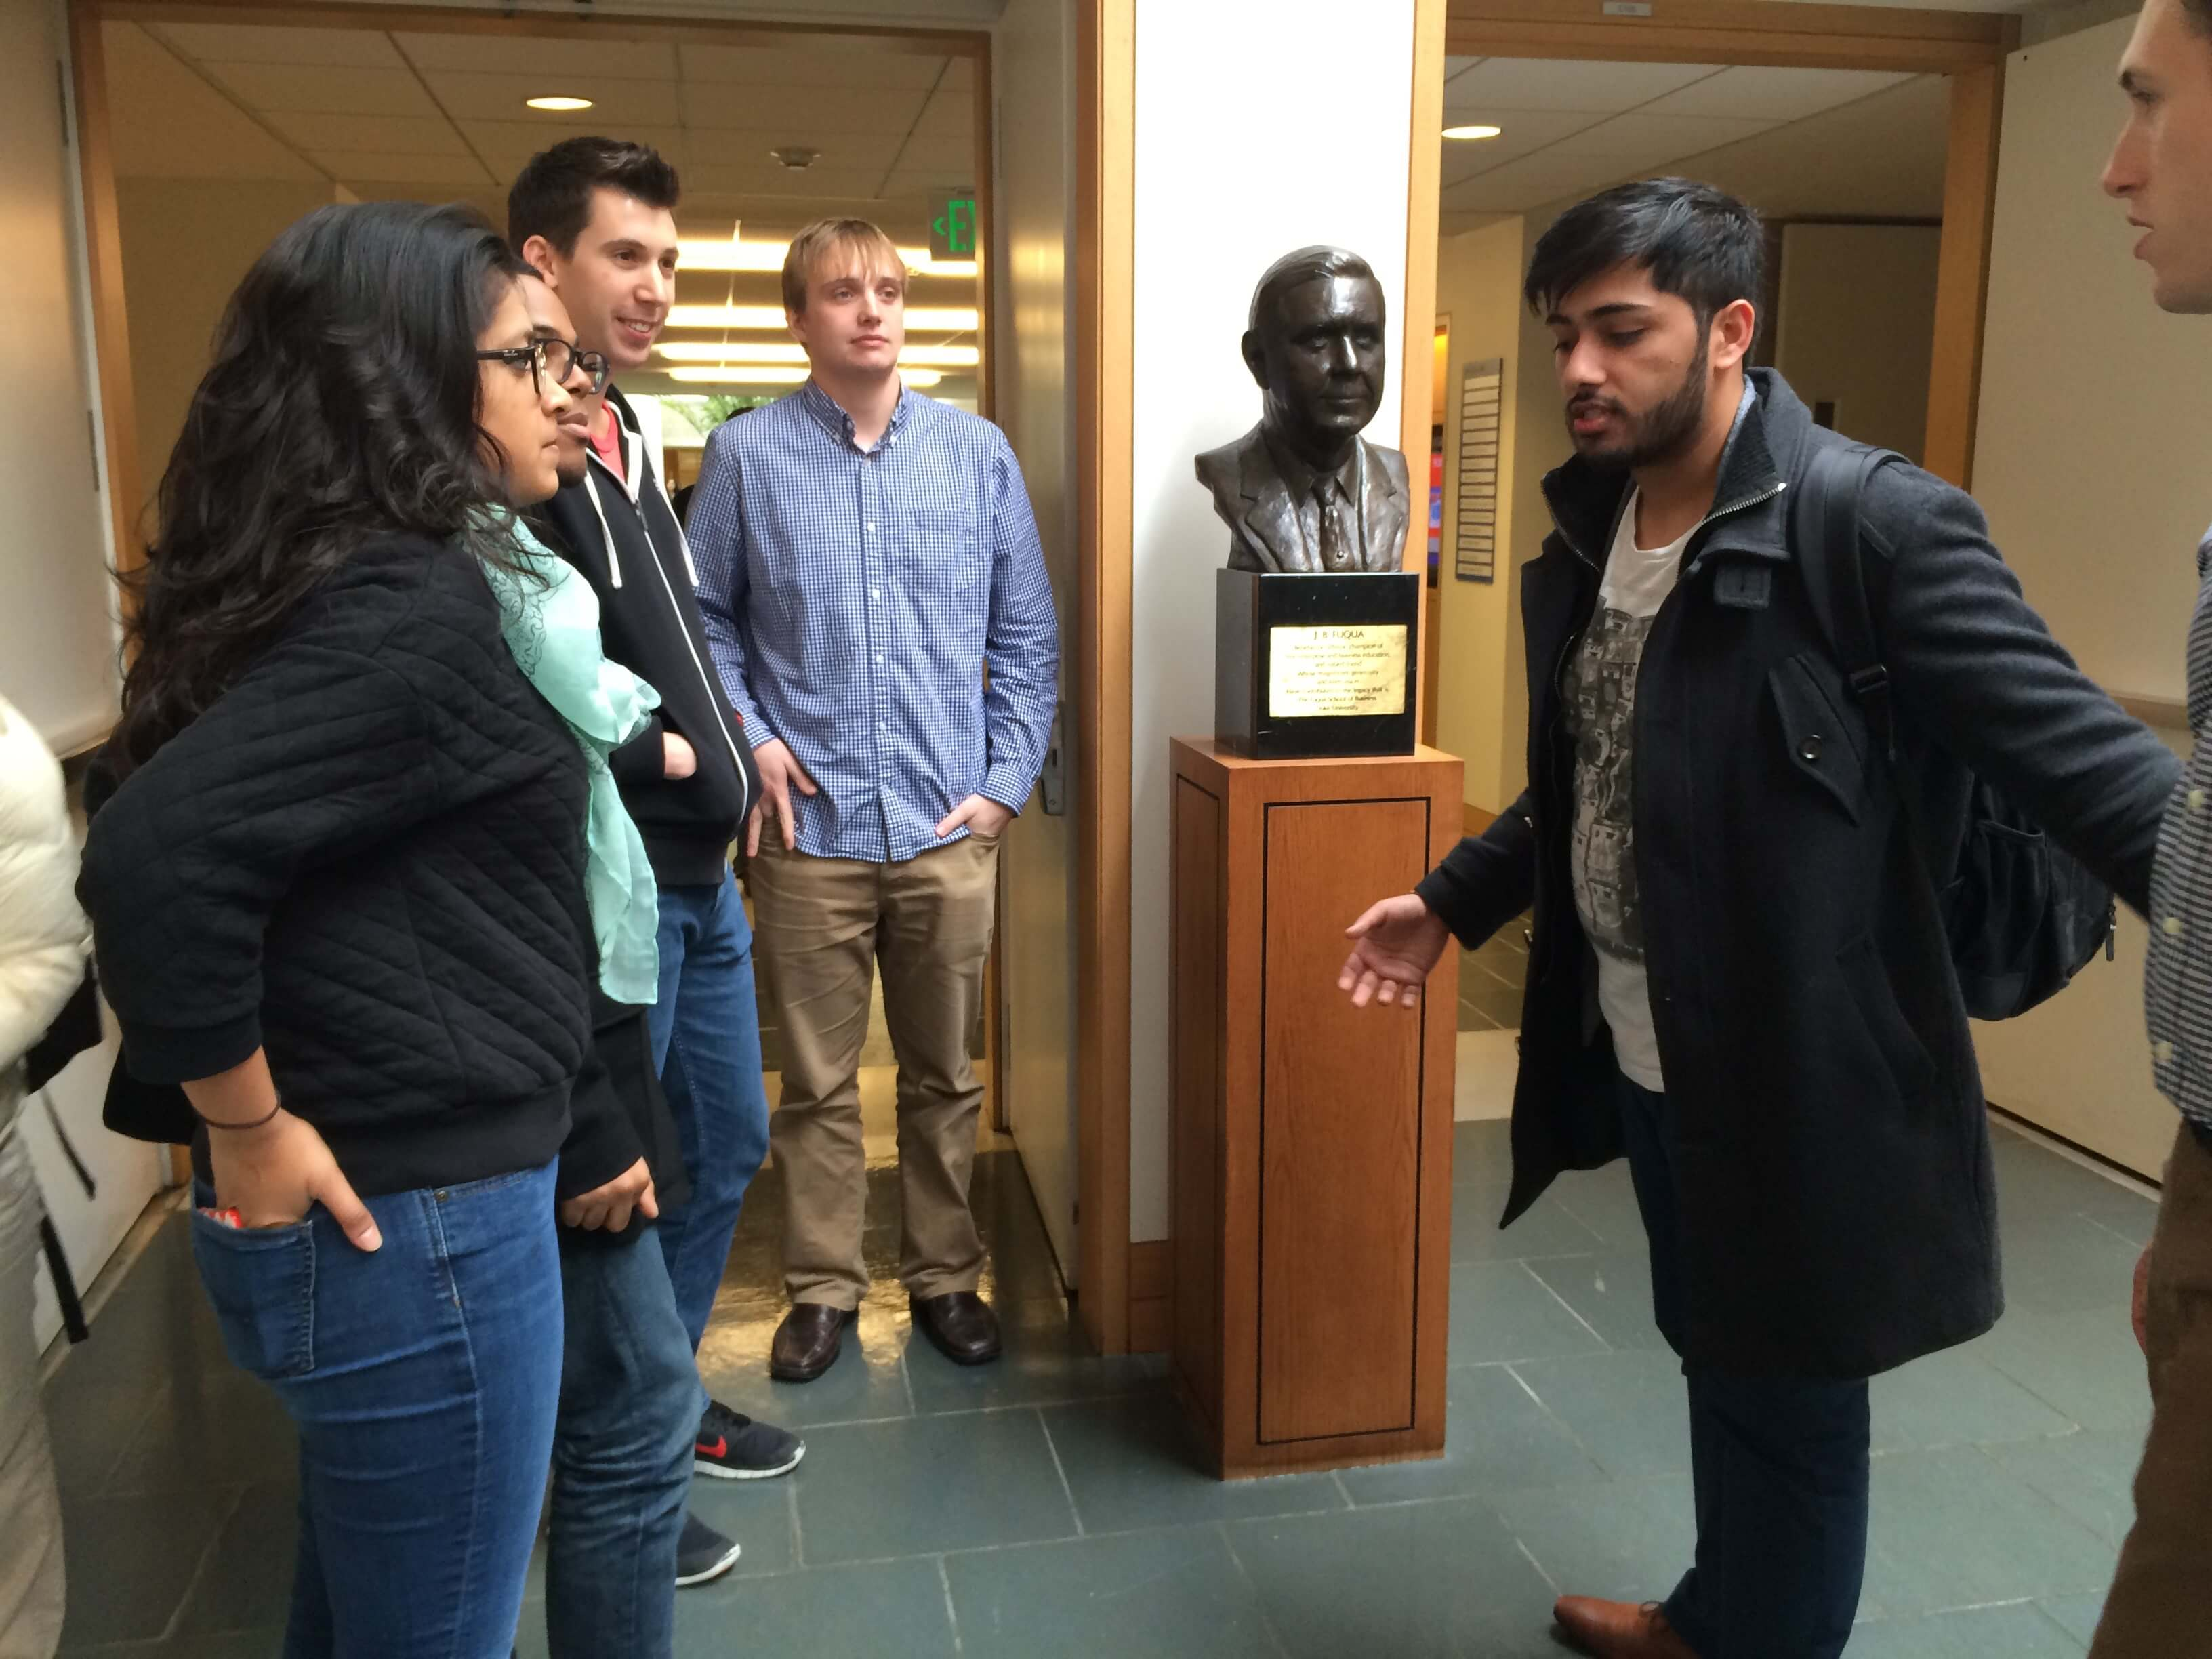 Admissions Ambassadors pause at the bust of school namesake, J.B. Fuqua, to tell his story